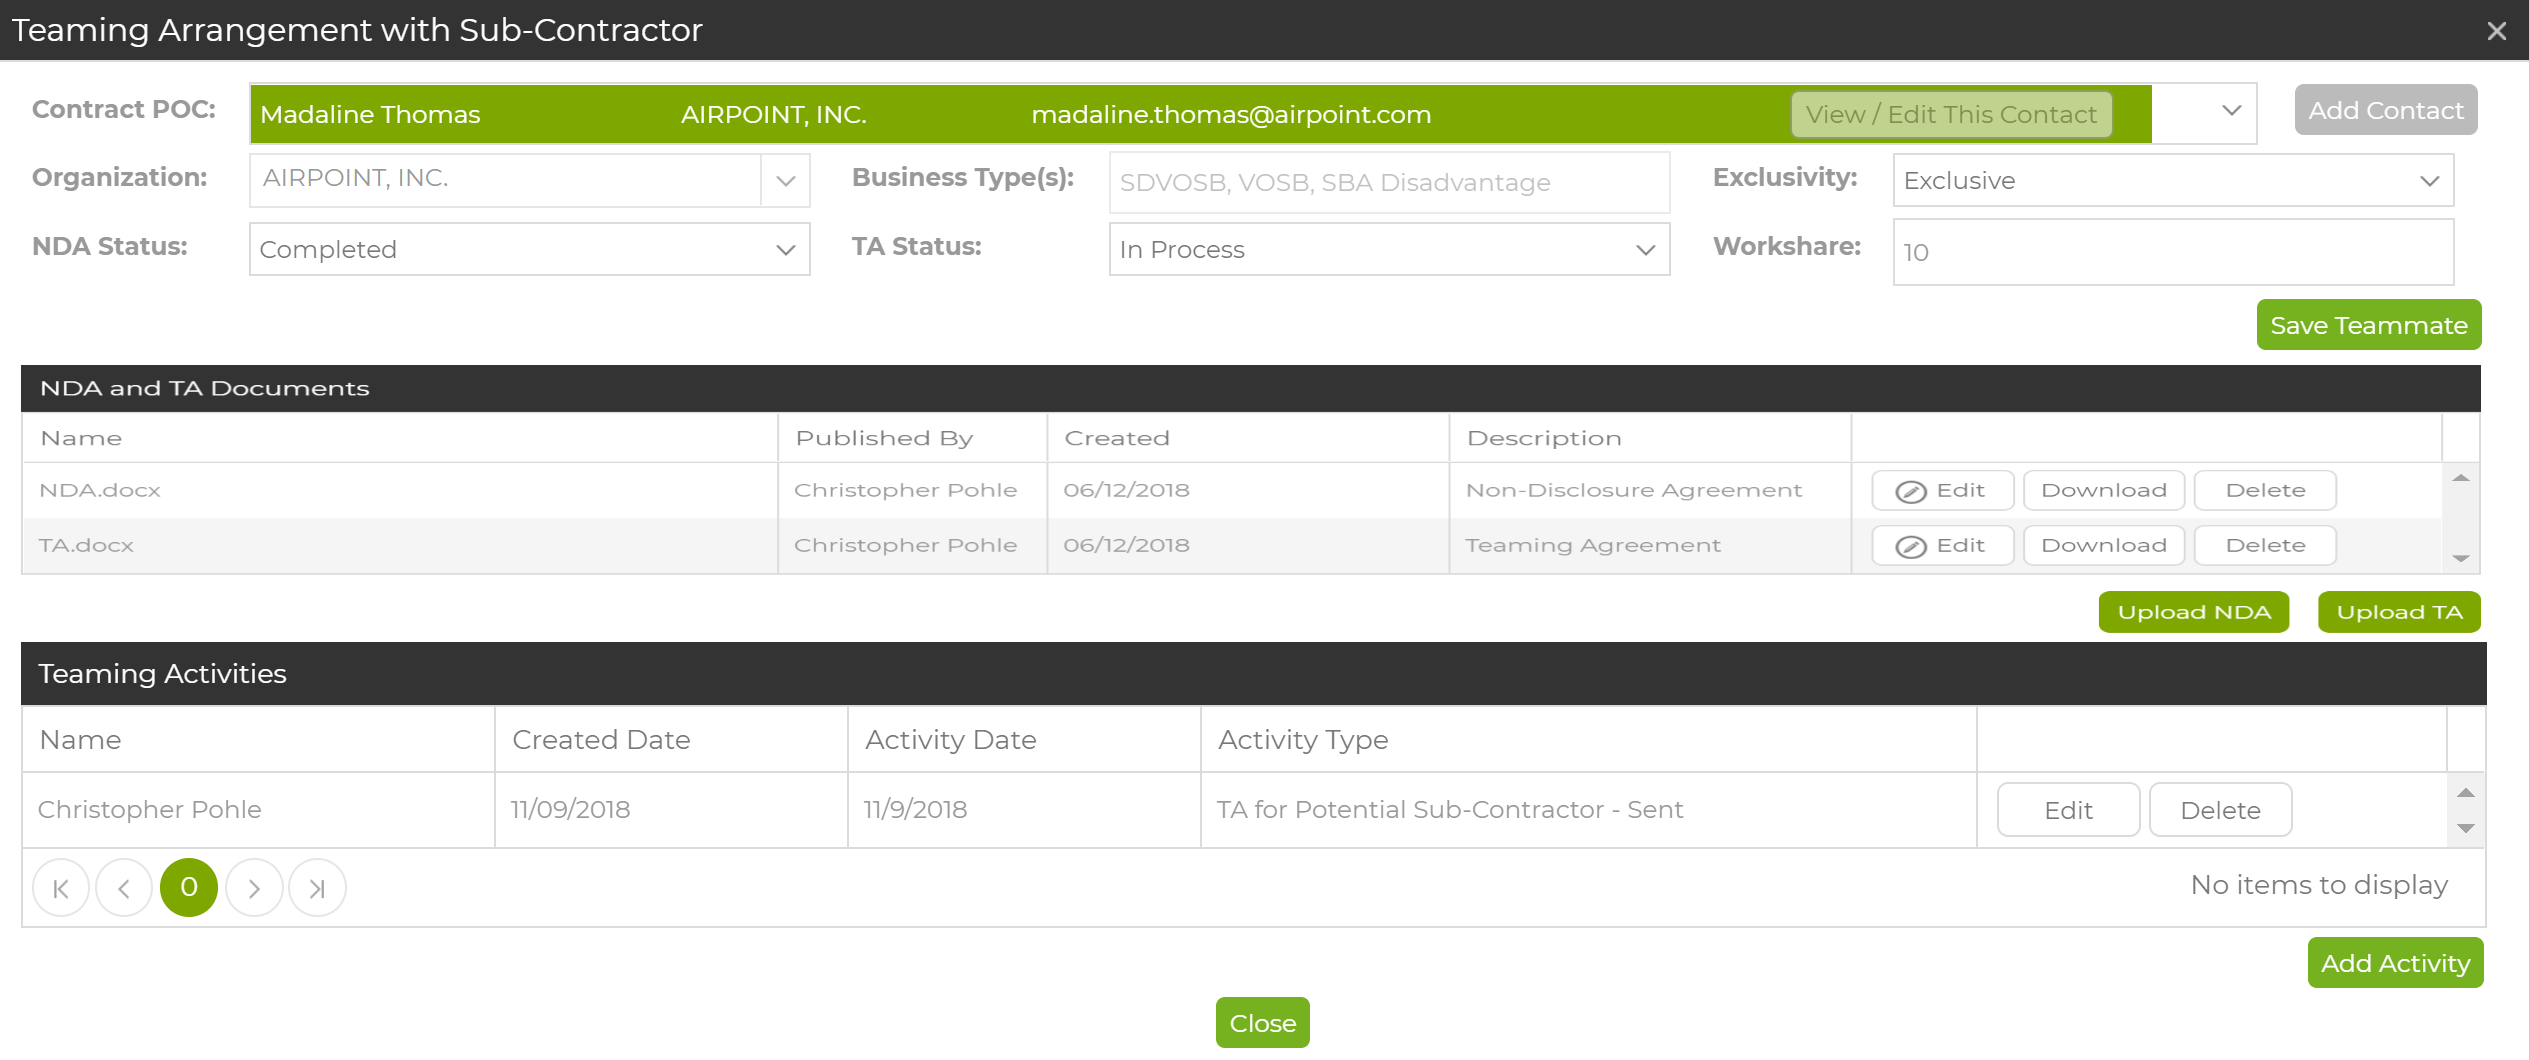 Teaming Agreement Details from Capture2's Team Management Tool for Subcontractors.